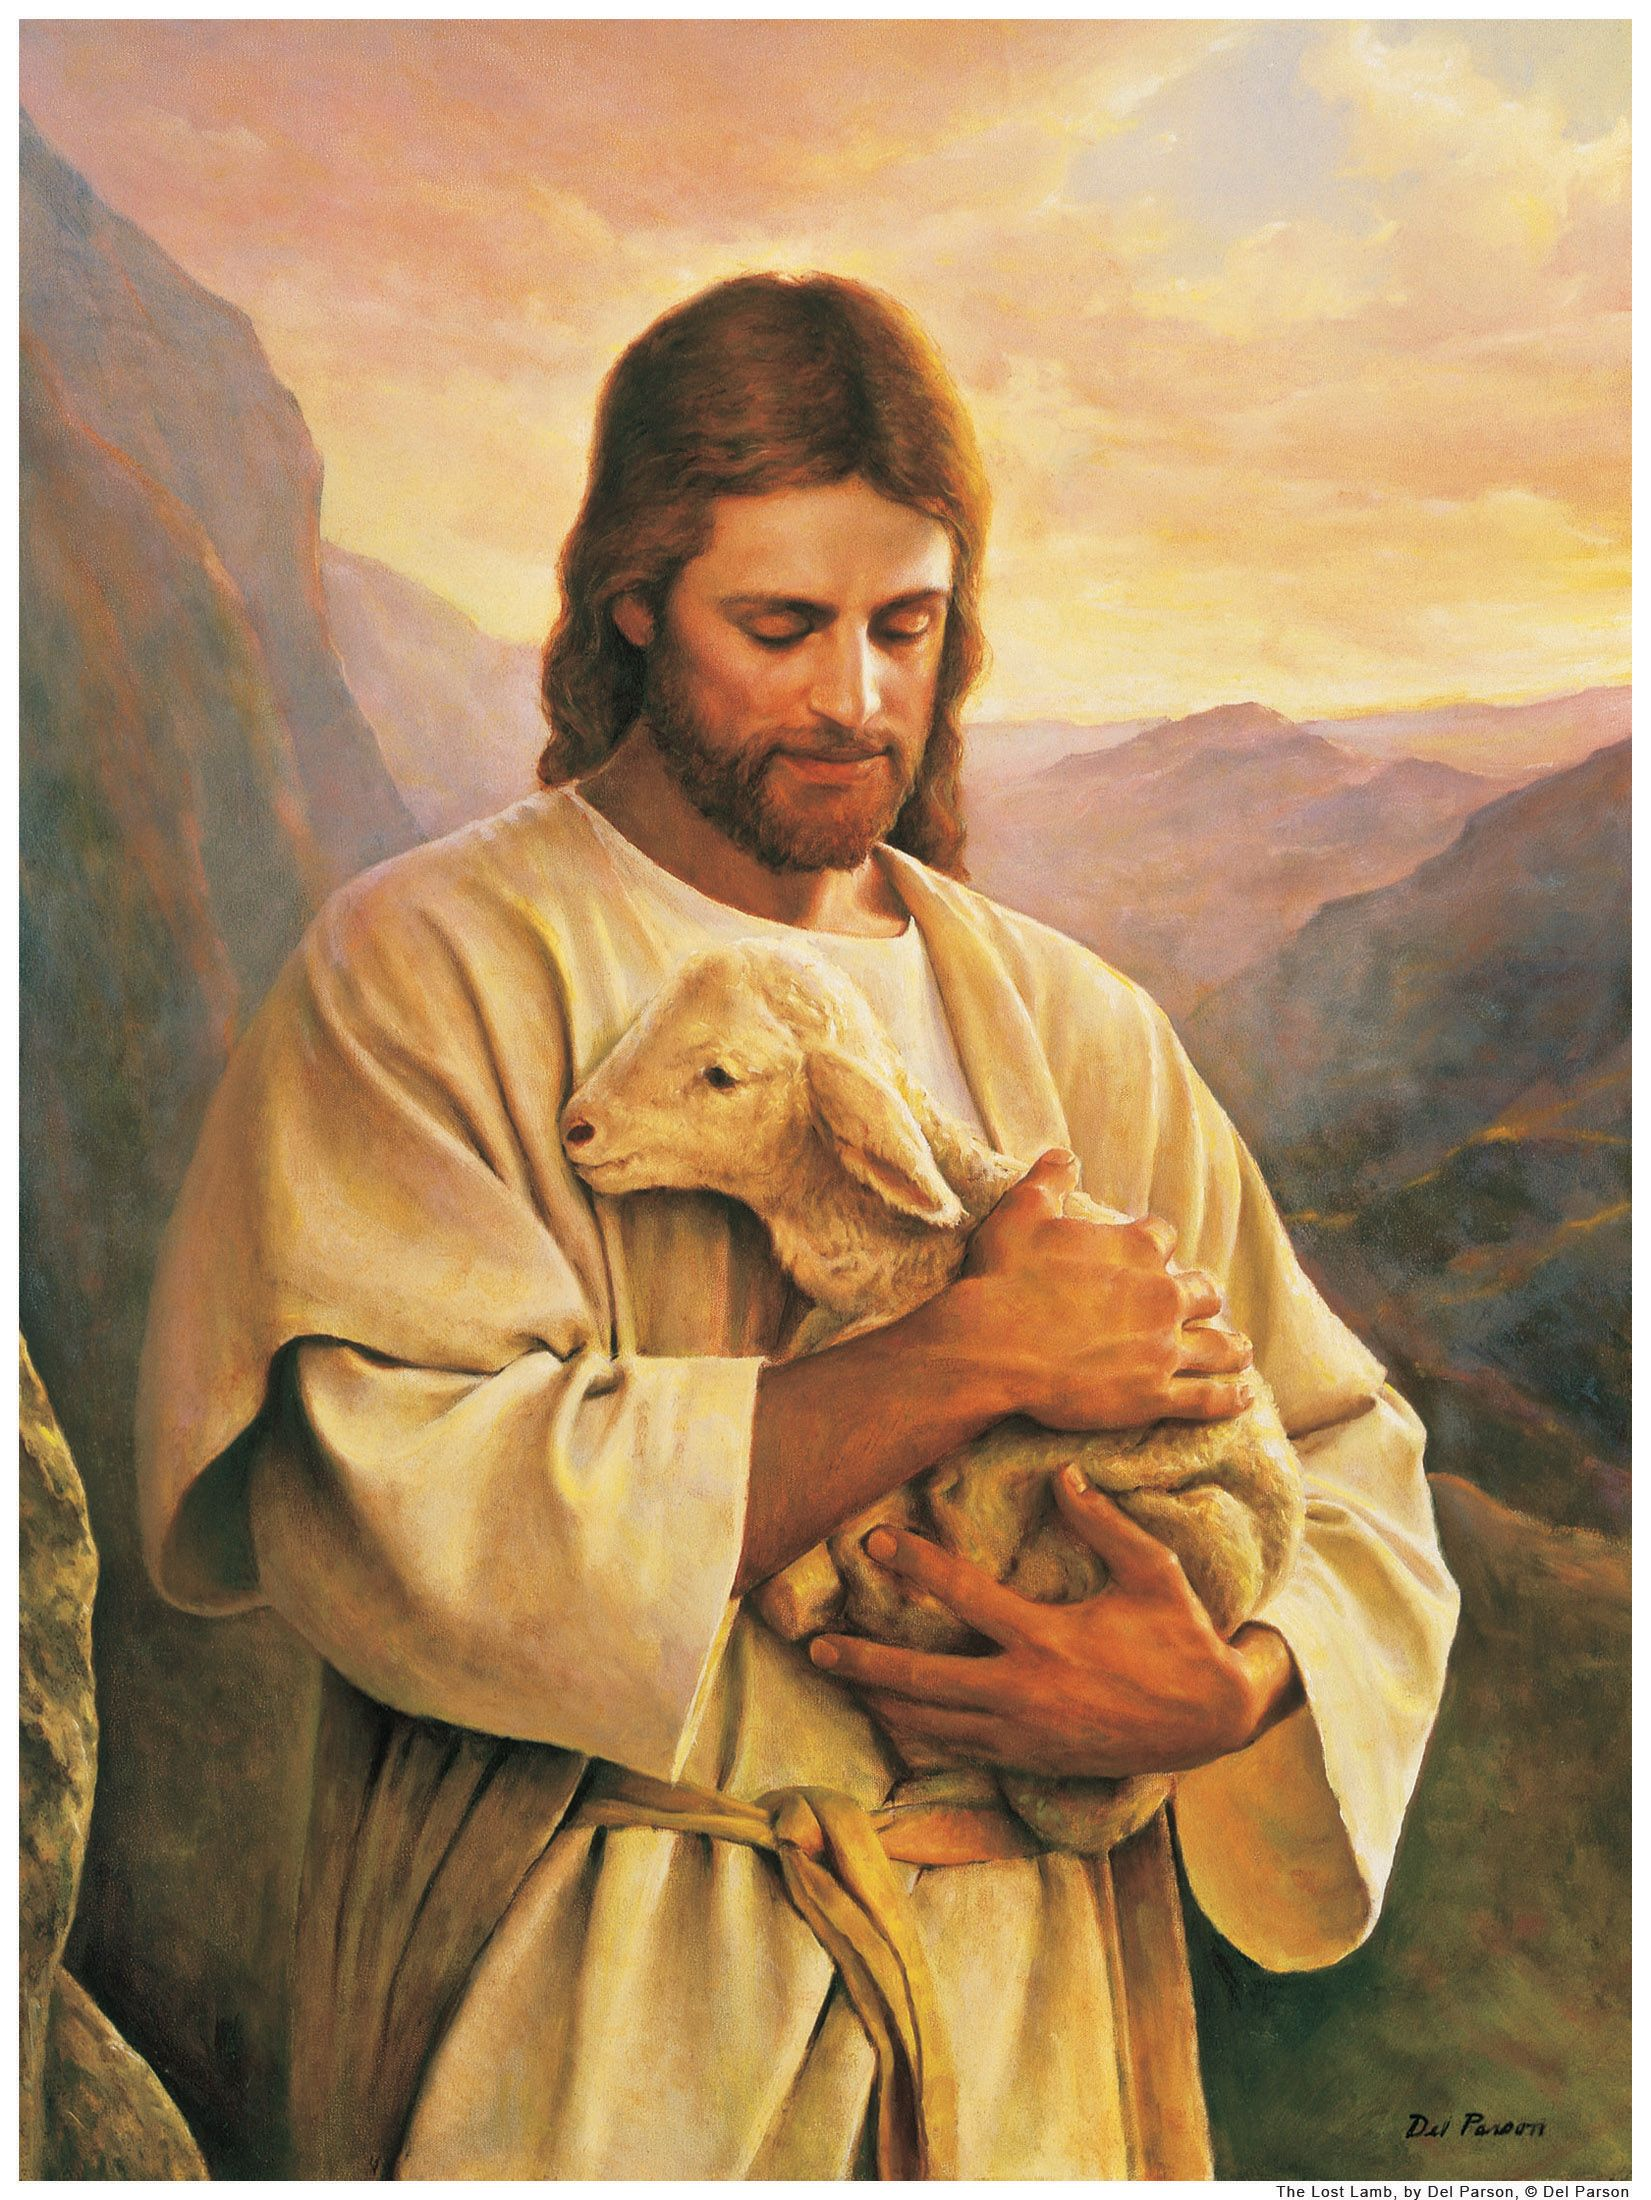 Pin by Ans Hoeksel on Jesus | Pictures of jesus christ, Jesus pictures, The  good shepherd